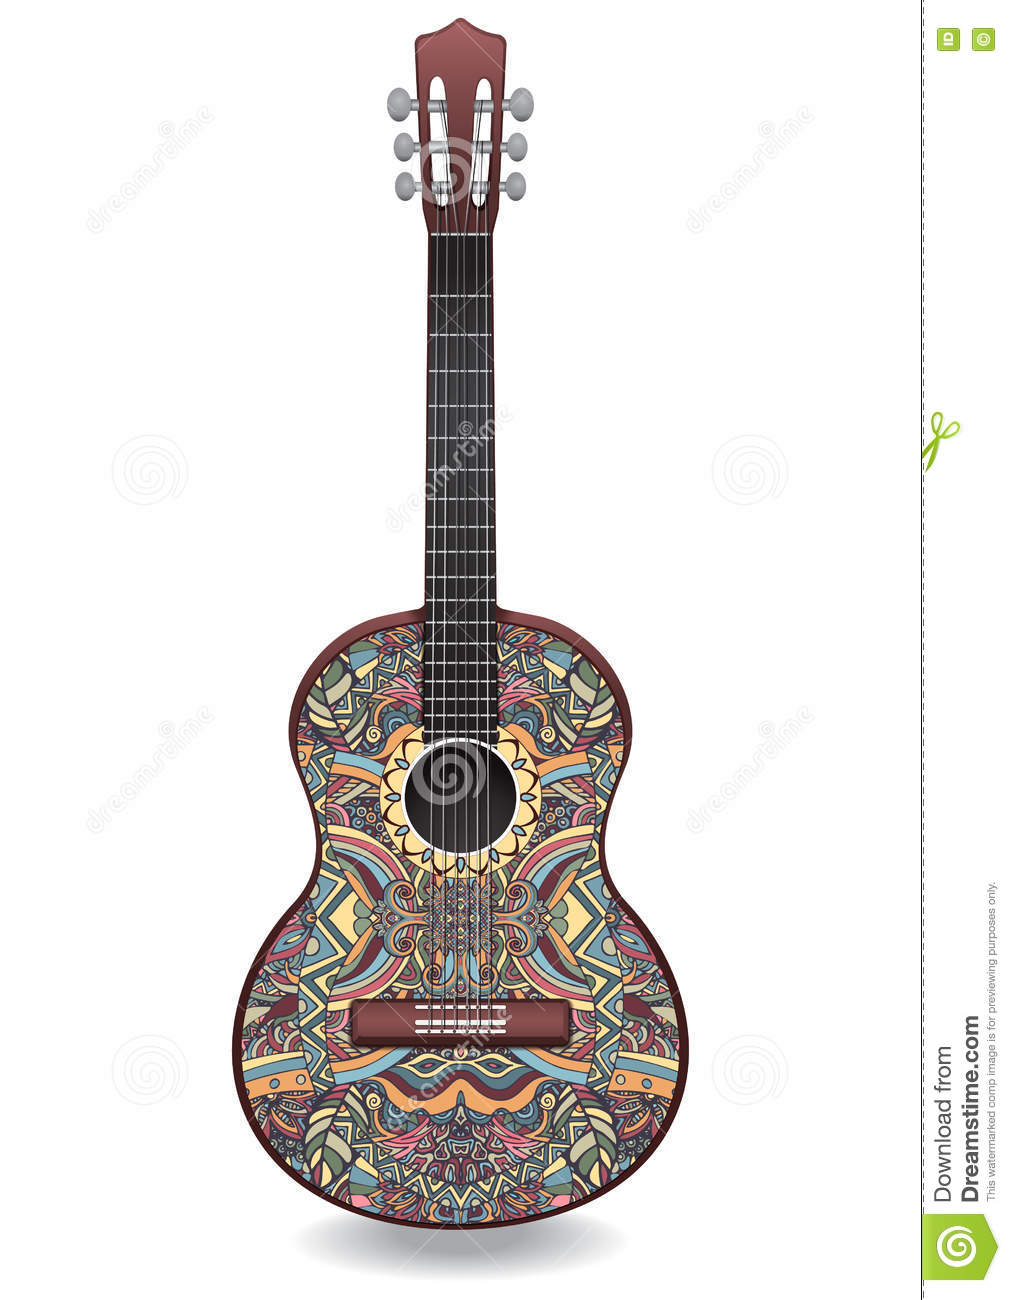 Musical instruments ornaments - Guitar Decorated With Ethnic Ornaments Design In The Style Of Boho Oriental Pattern